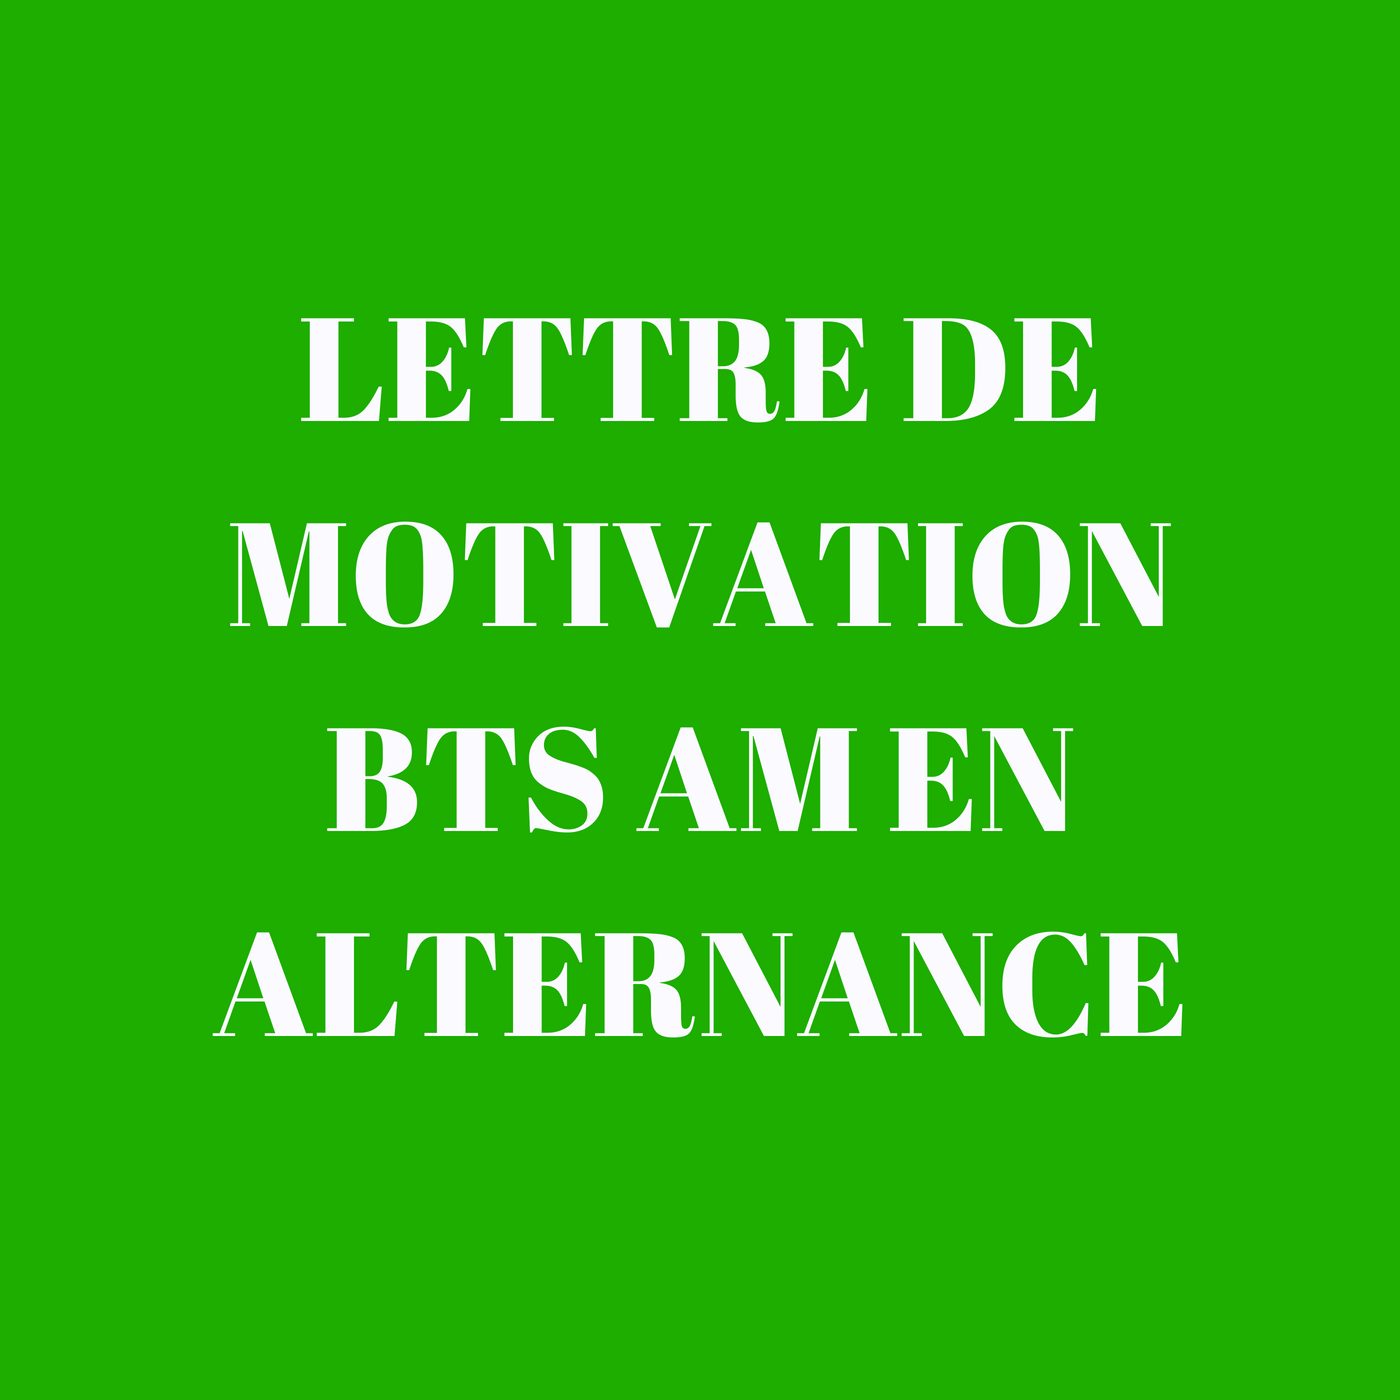 lettre de motivation bts sam en alternance